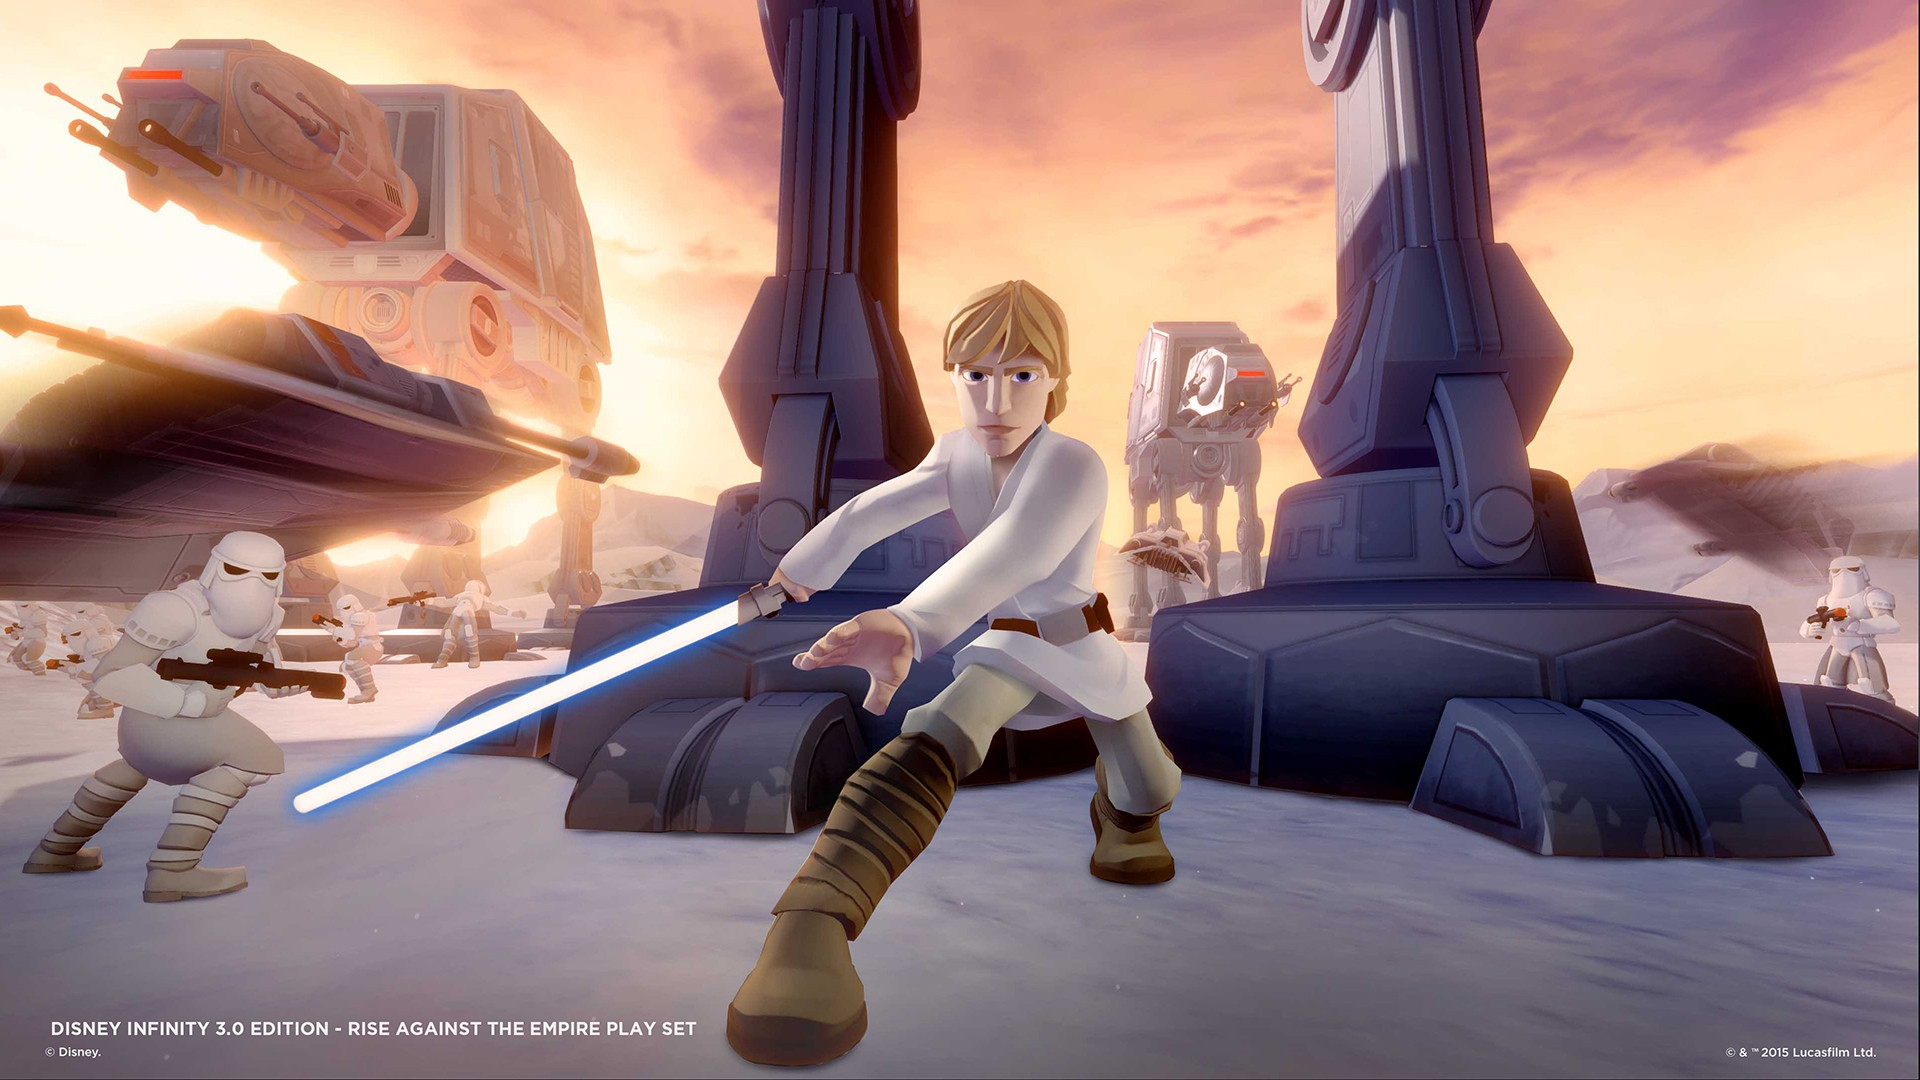 Disney Infinity 3 0 Star Wars Rise Against The Empire Gets Details New Images